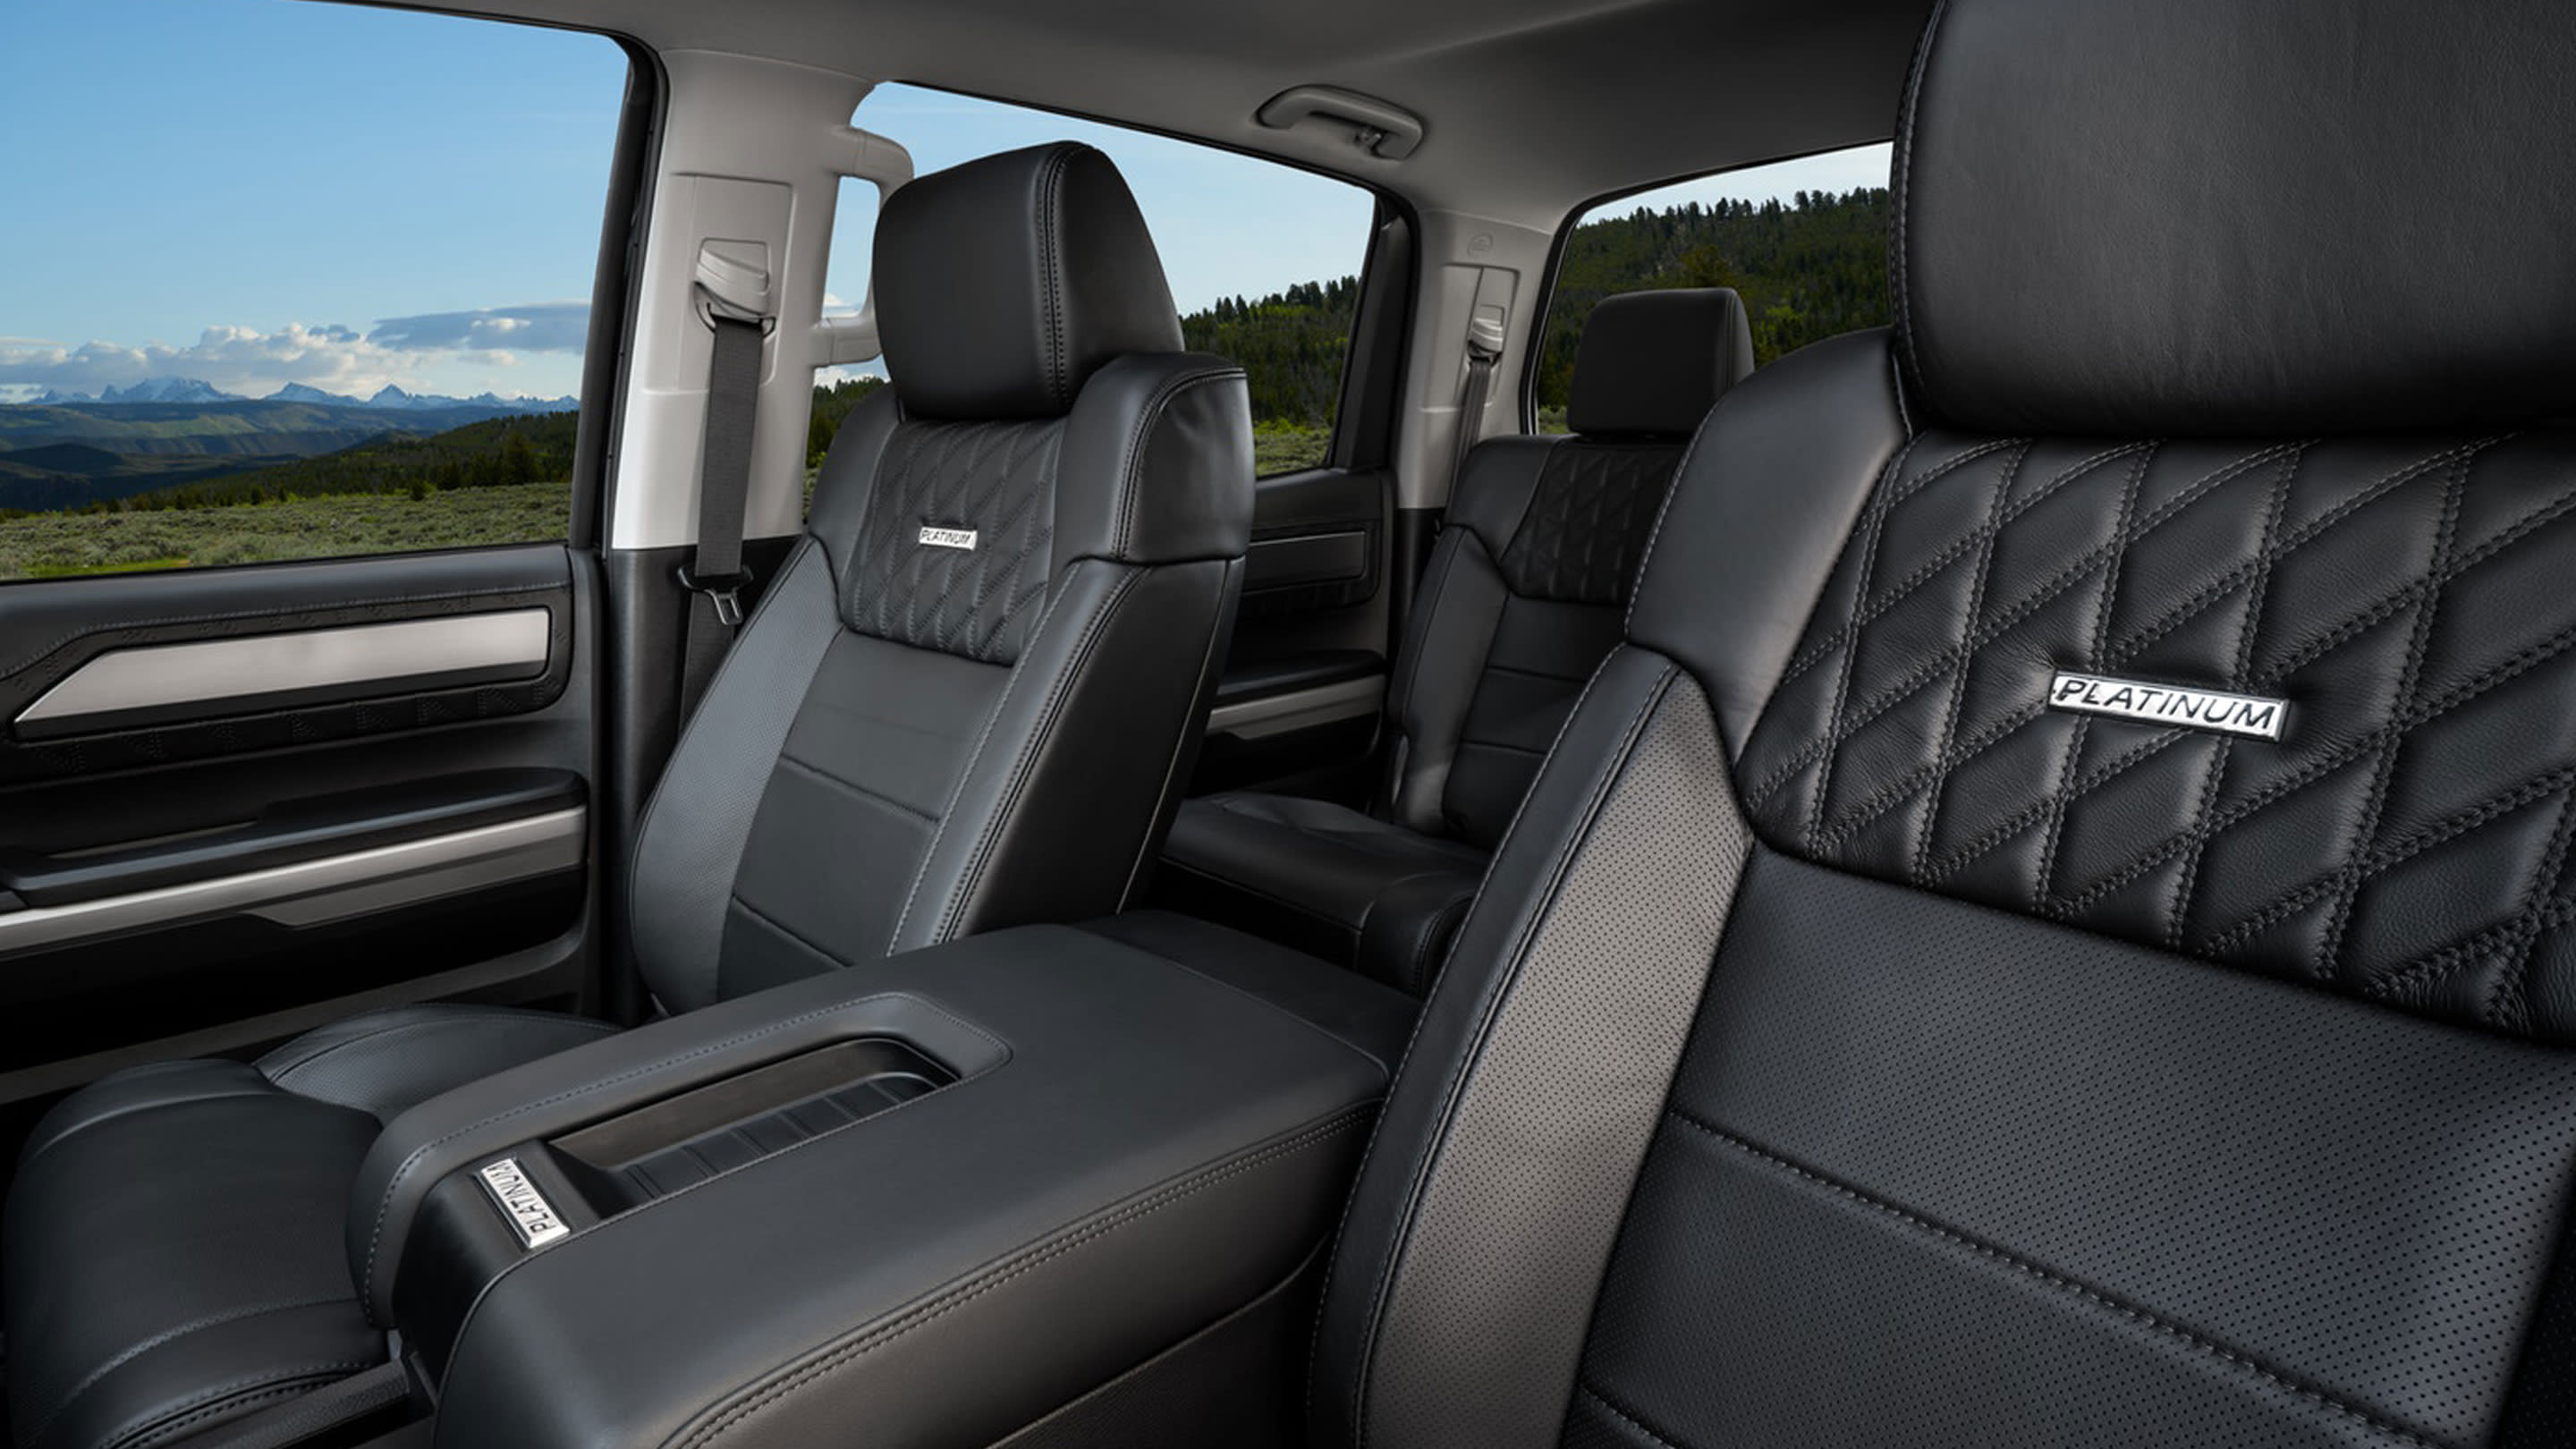 The 2020 Toyota Tundra available at Uebelhor Toyota near Evansville, IN